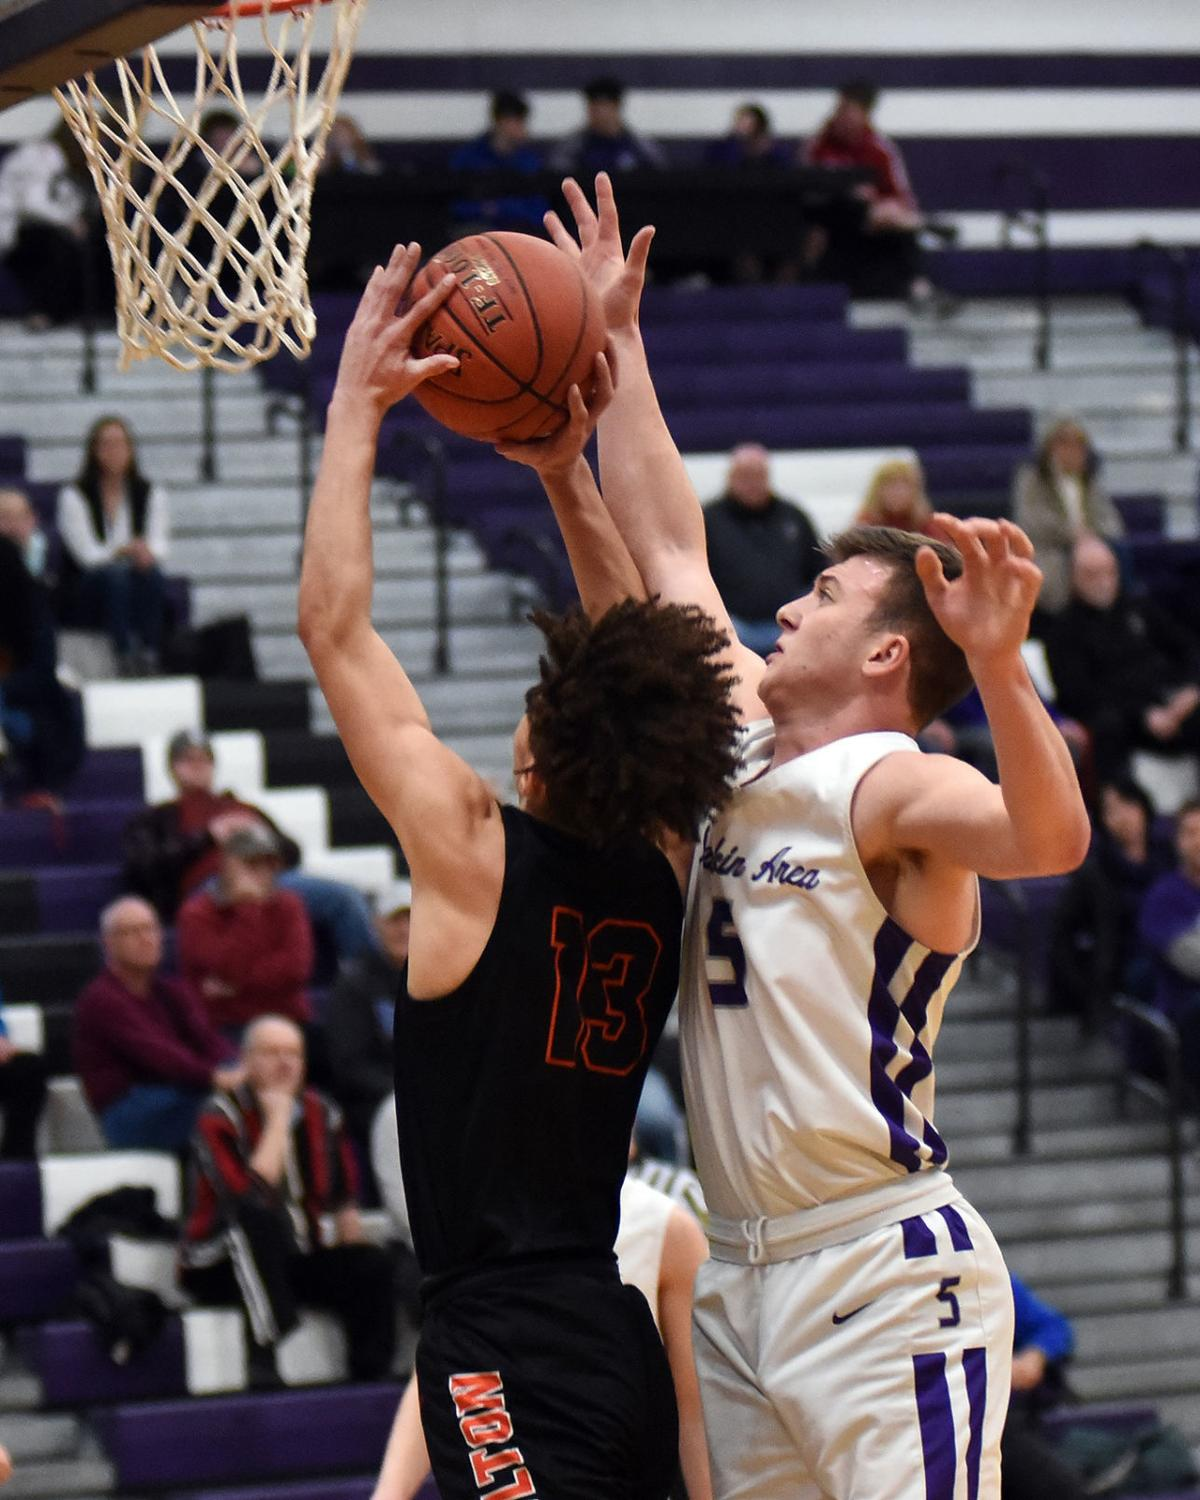 Shamokin coasts to win over Milton